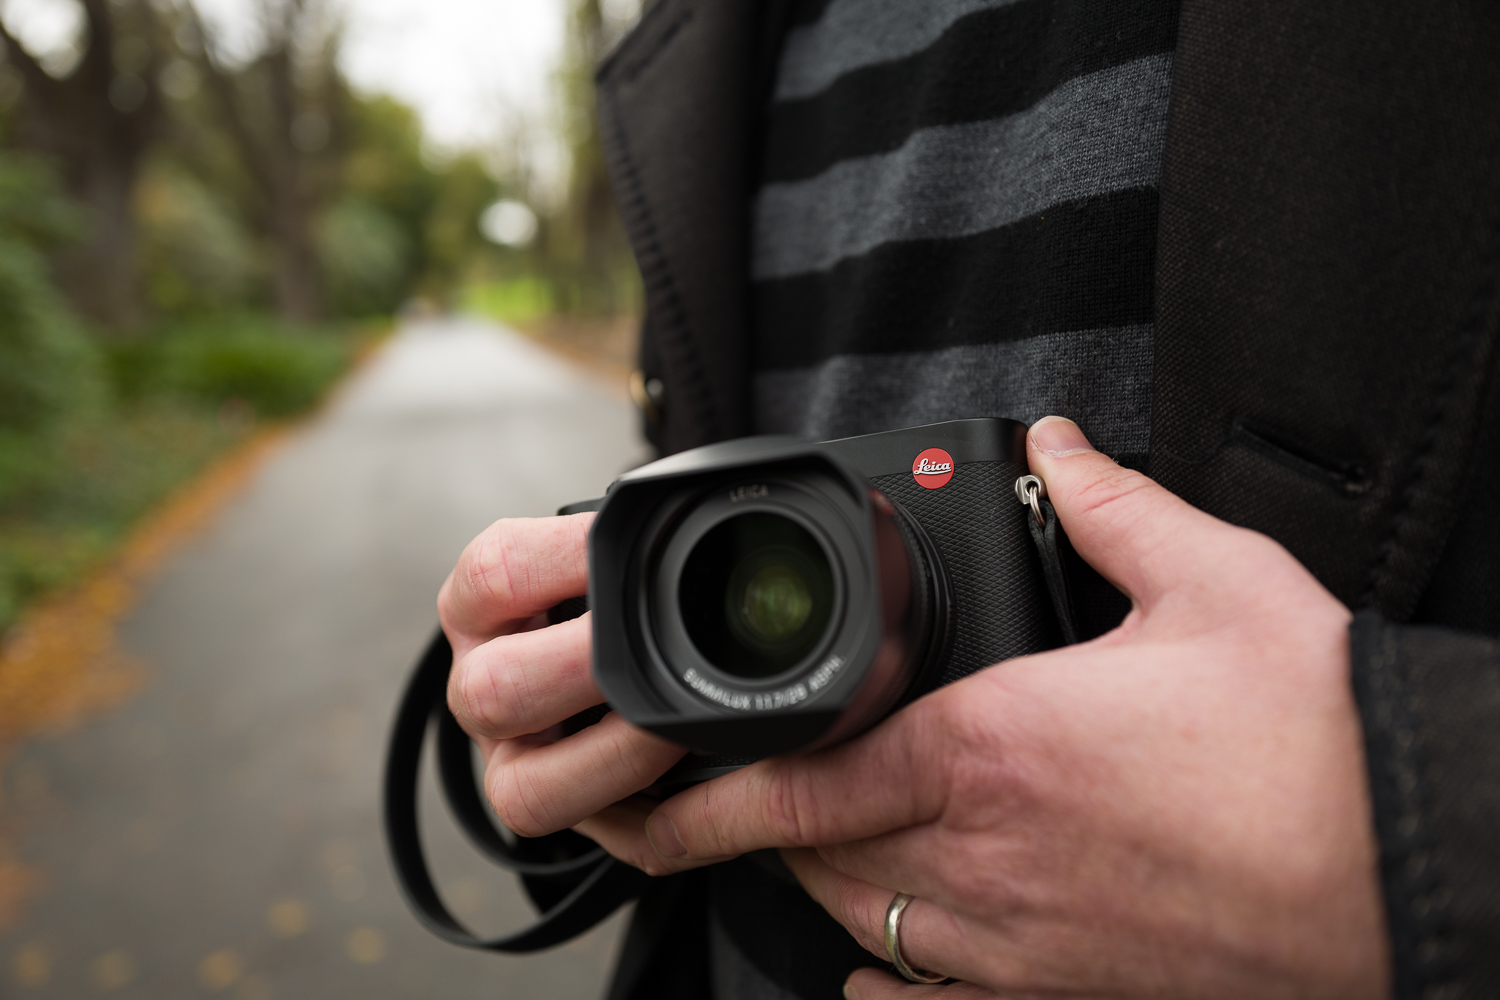 Jesse Marlow seen holding the Leica Q. Picture shot on the Leica Q at f/1.7